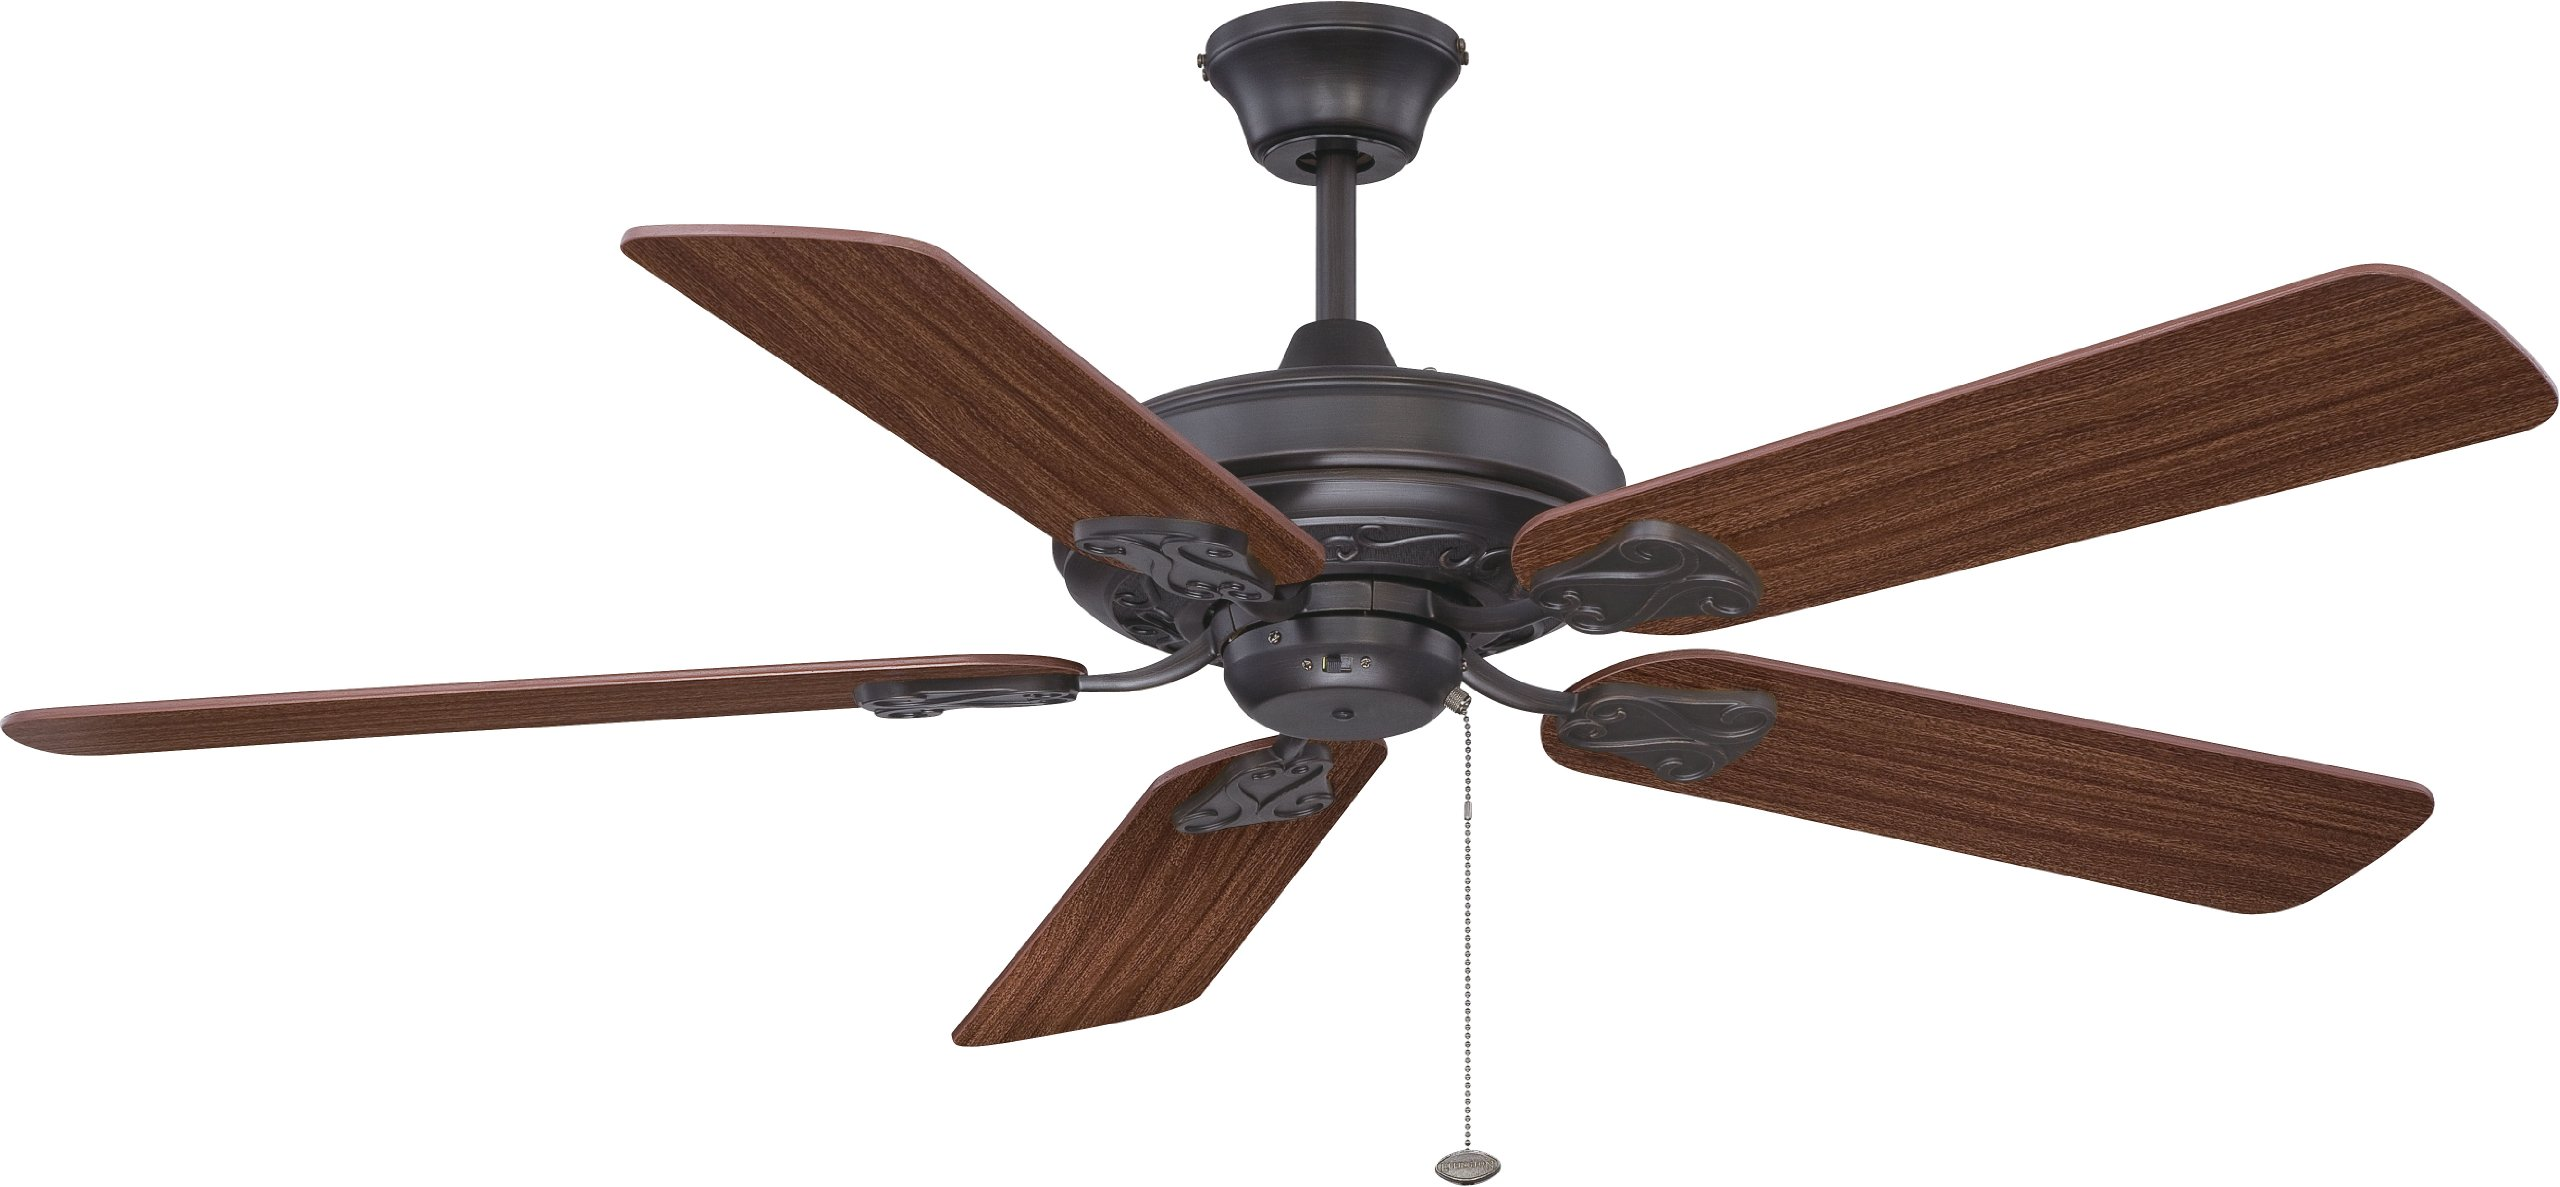 Craftmade MAJ52ABZ5 Ceiling Fan with Blades Included, 52''